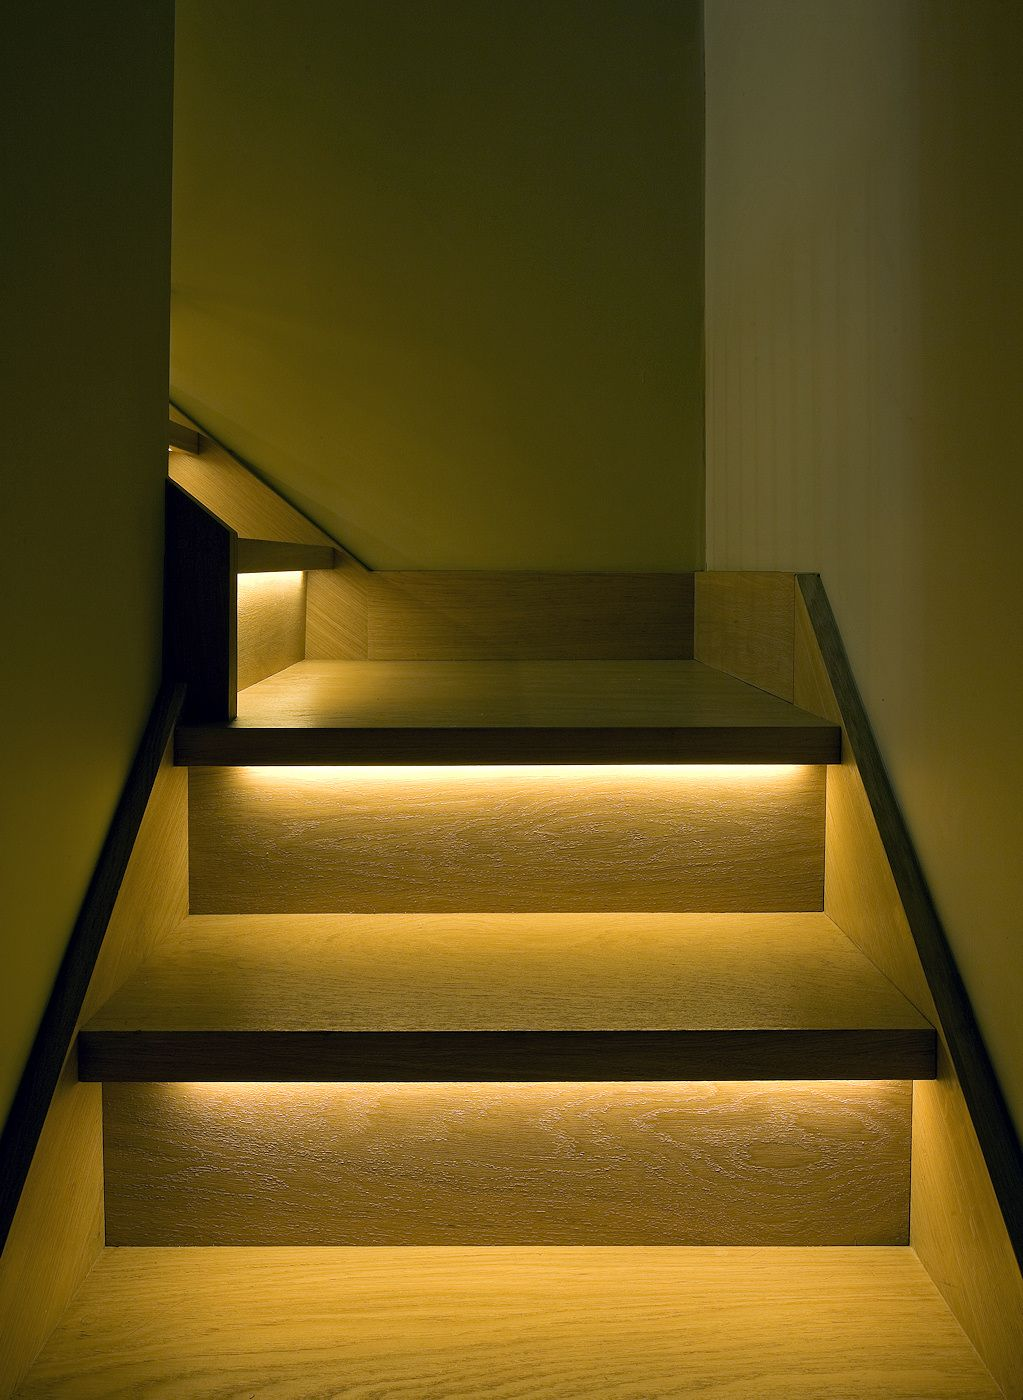 52 Best Staircase Lighting Images On Pinterest: RECESSED STAIR LIGHTING - Google Search